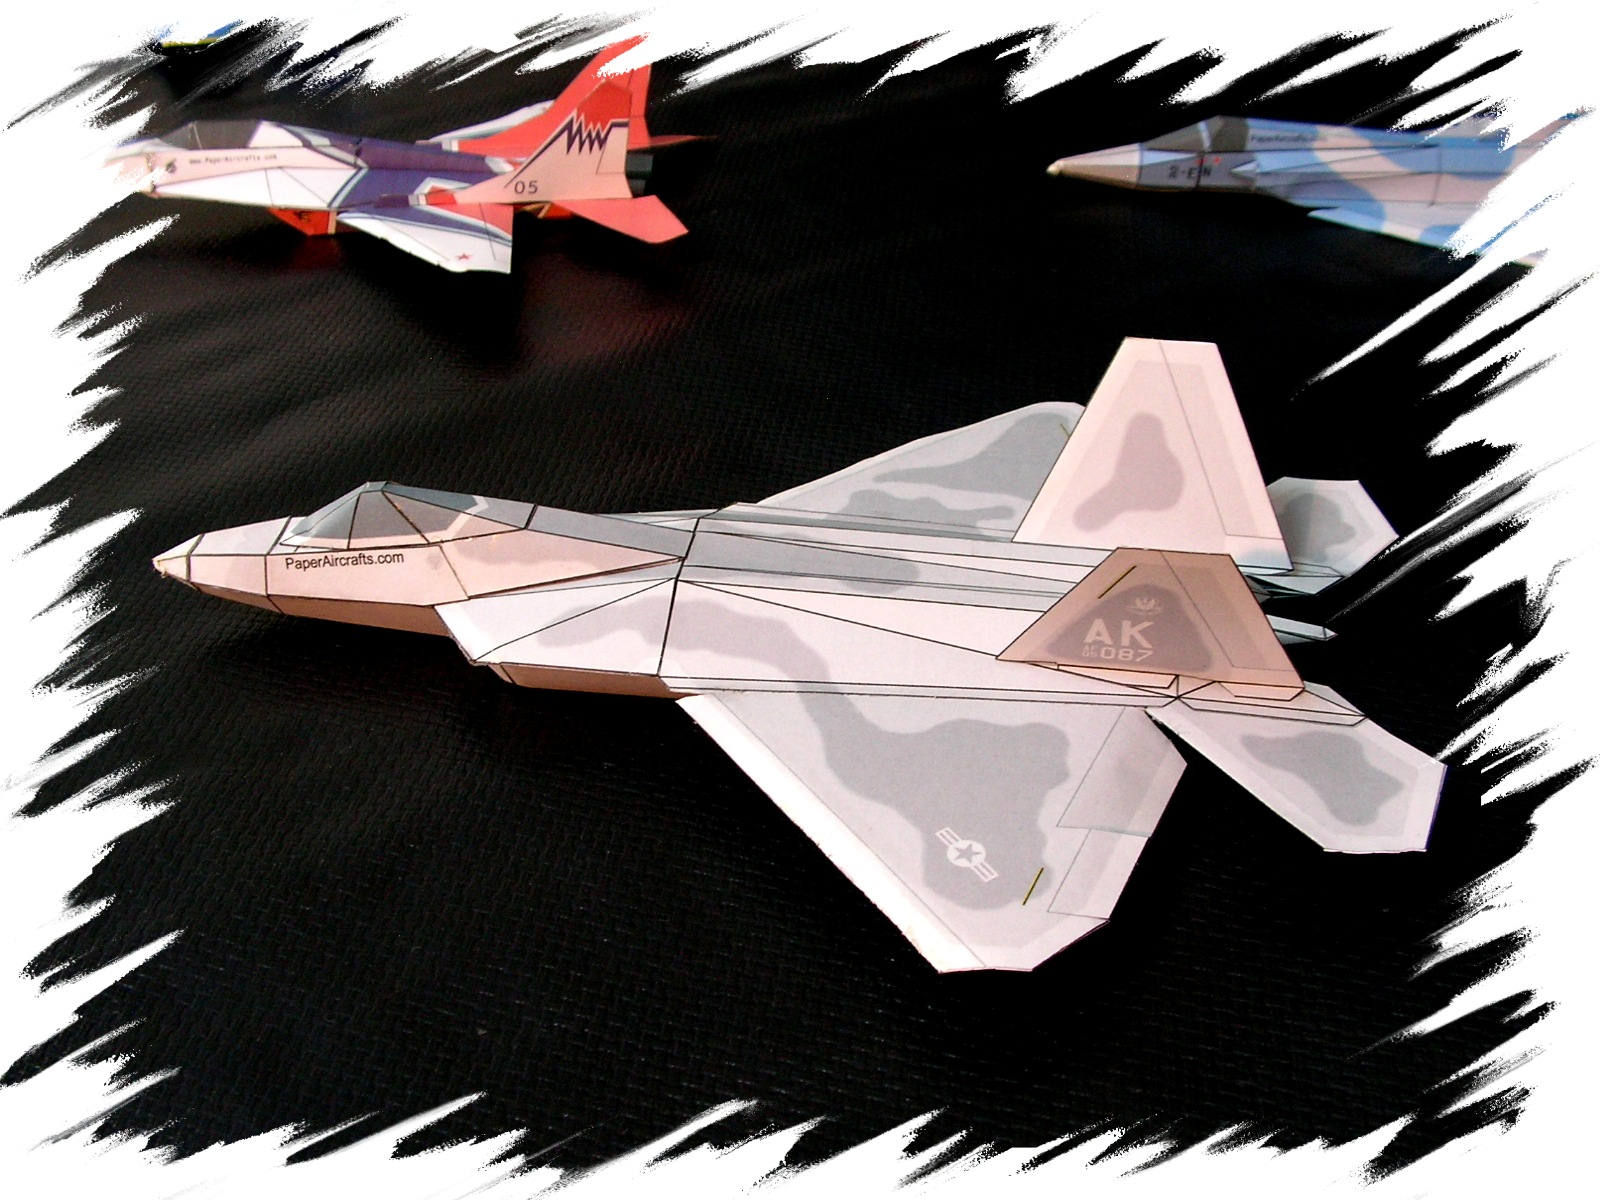 flyable model airplanes with Paperaircrafts on 037 EFLYER FA01 BrodheadFlyIn besides paperaircrafts besides Aircraft fighters zero Pof also Attachment besides Stanzel Model Aircraft Museum.